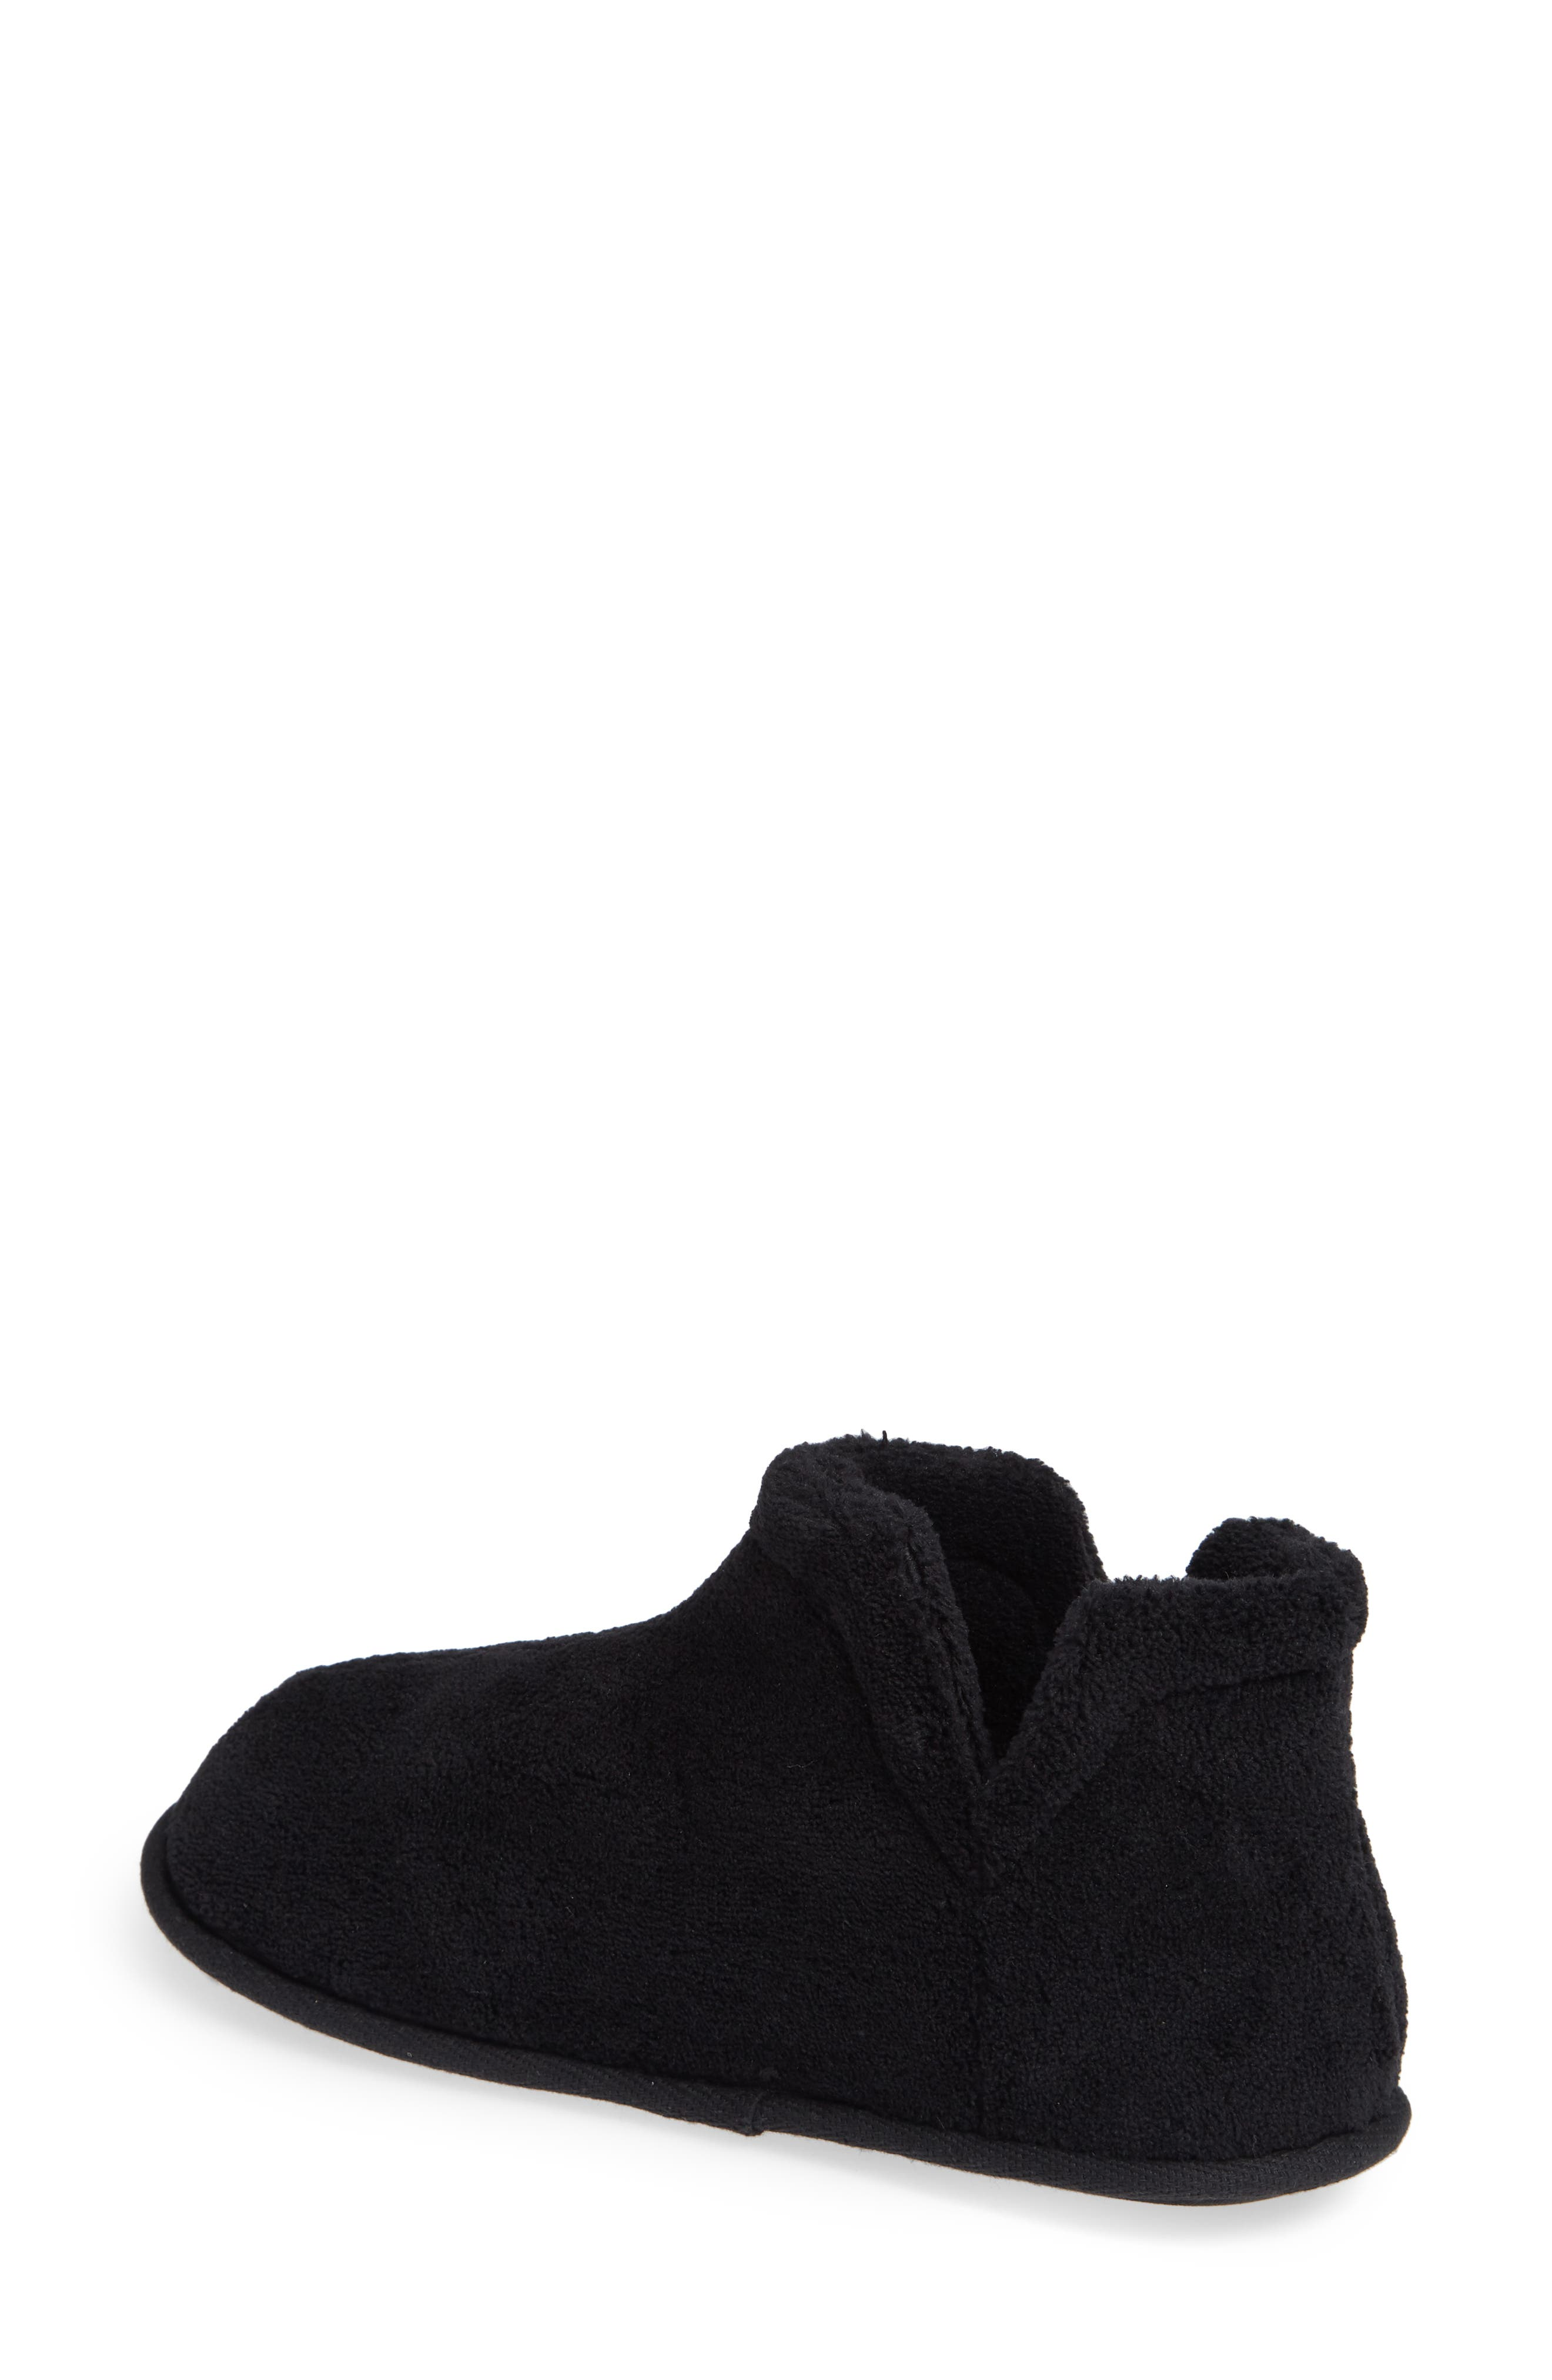 Evalyn Slipper Bootie,                             Alternate thumbnail 2, color,                             BLACK FABRIC